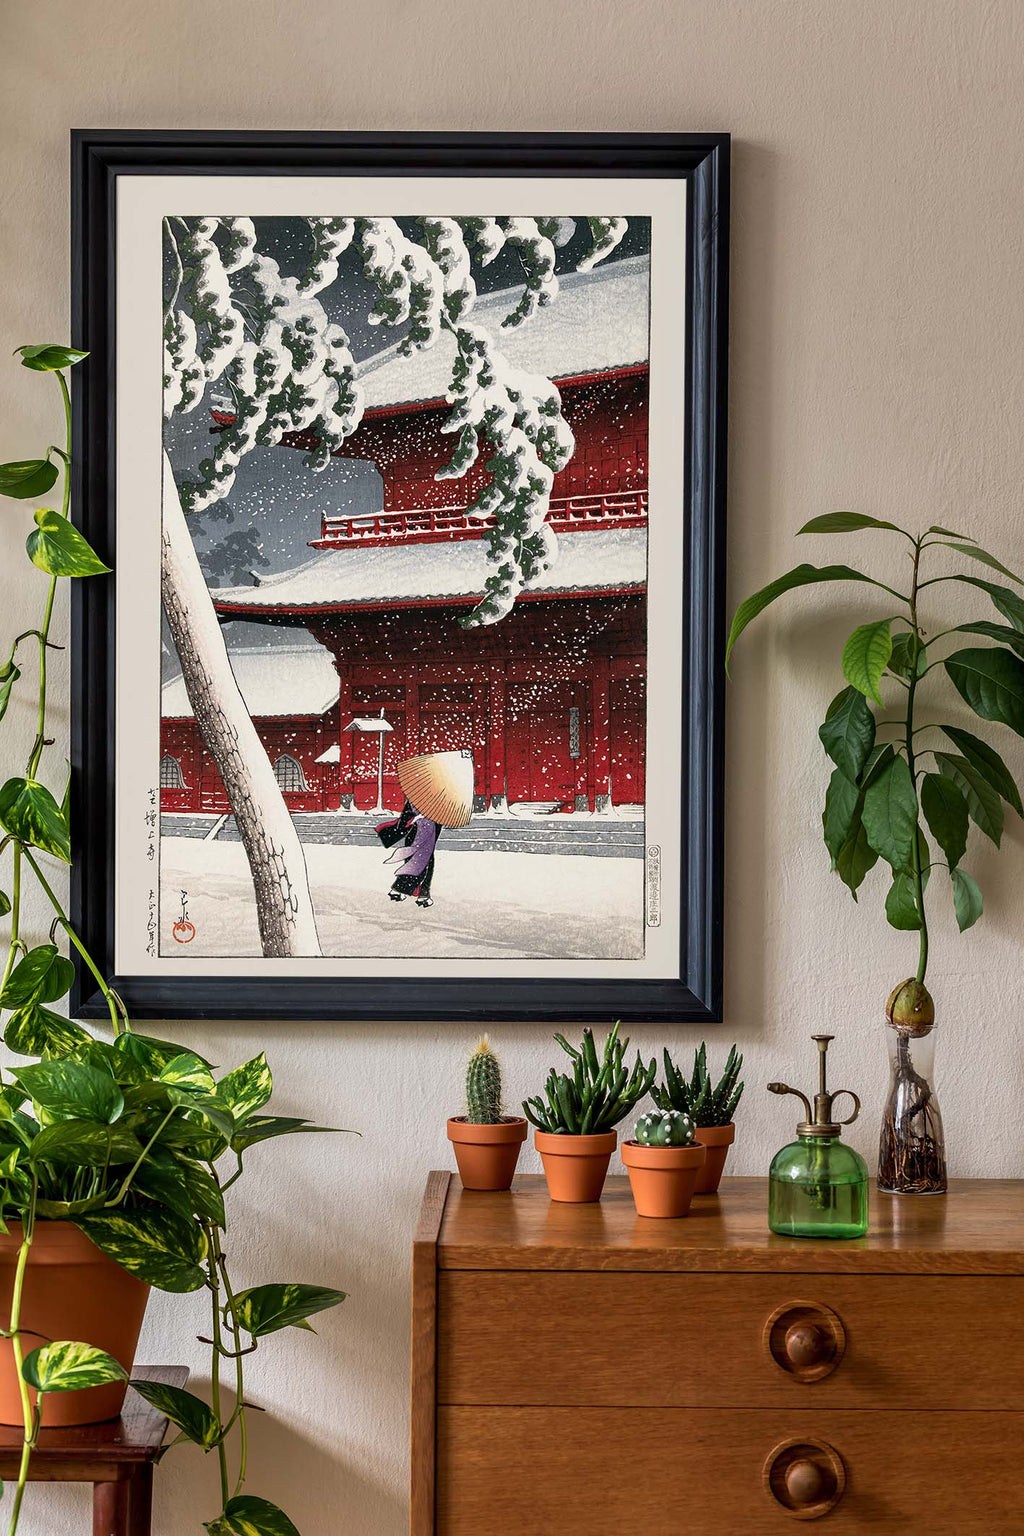 Geisha in the snow storm by Hasui Poster